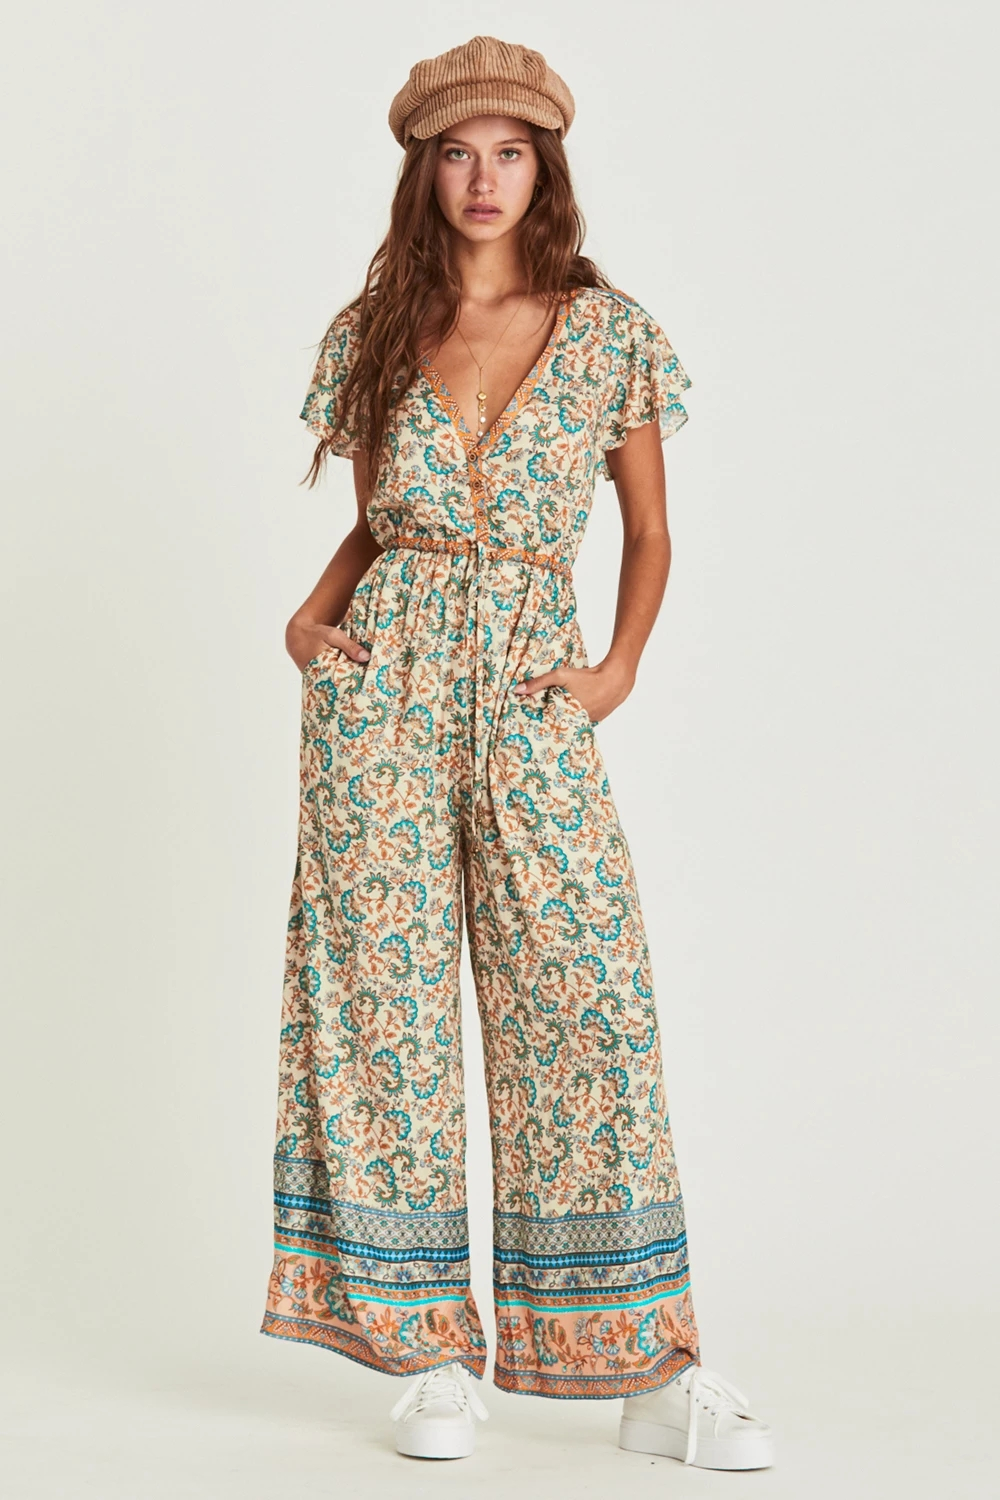 Wide Leg Pants Rompers Womens Jumpsuit Summer Boho Beach vintage Playsuit